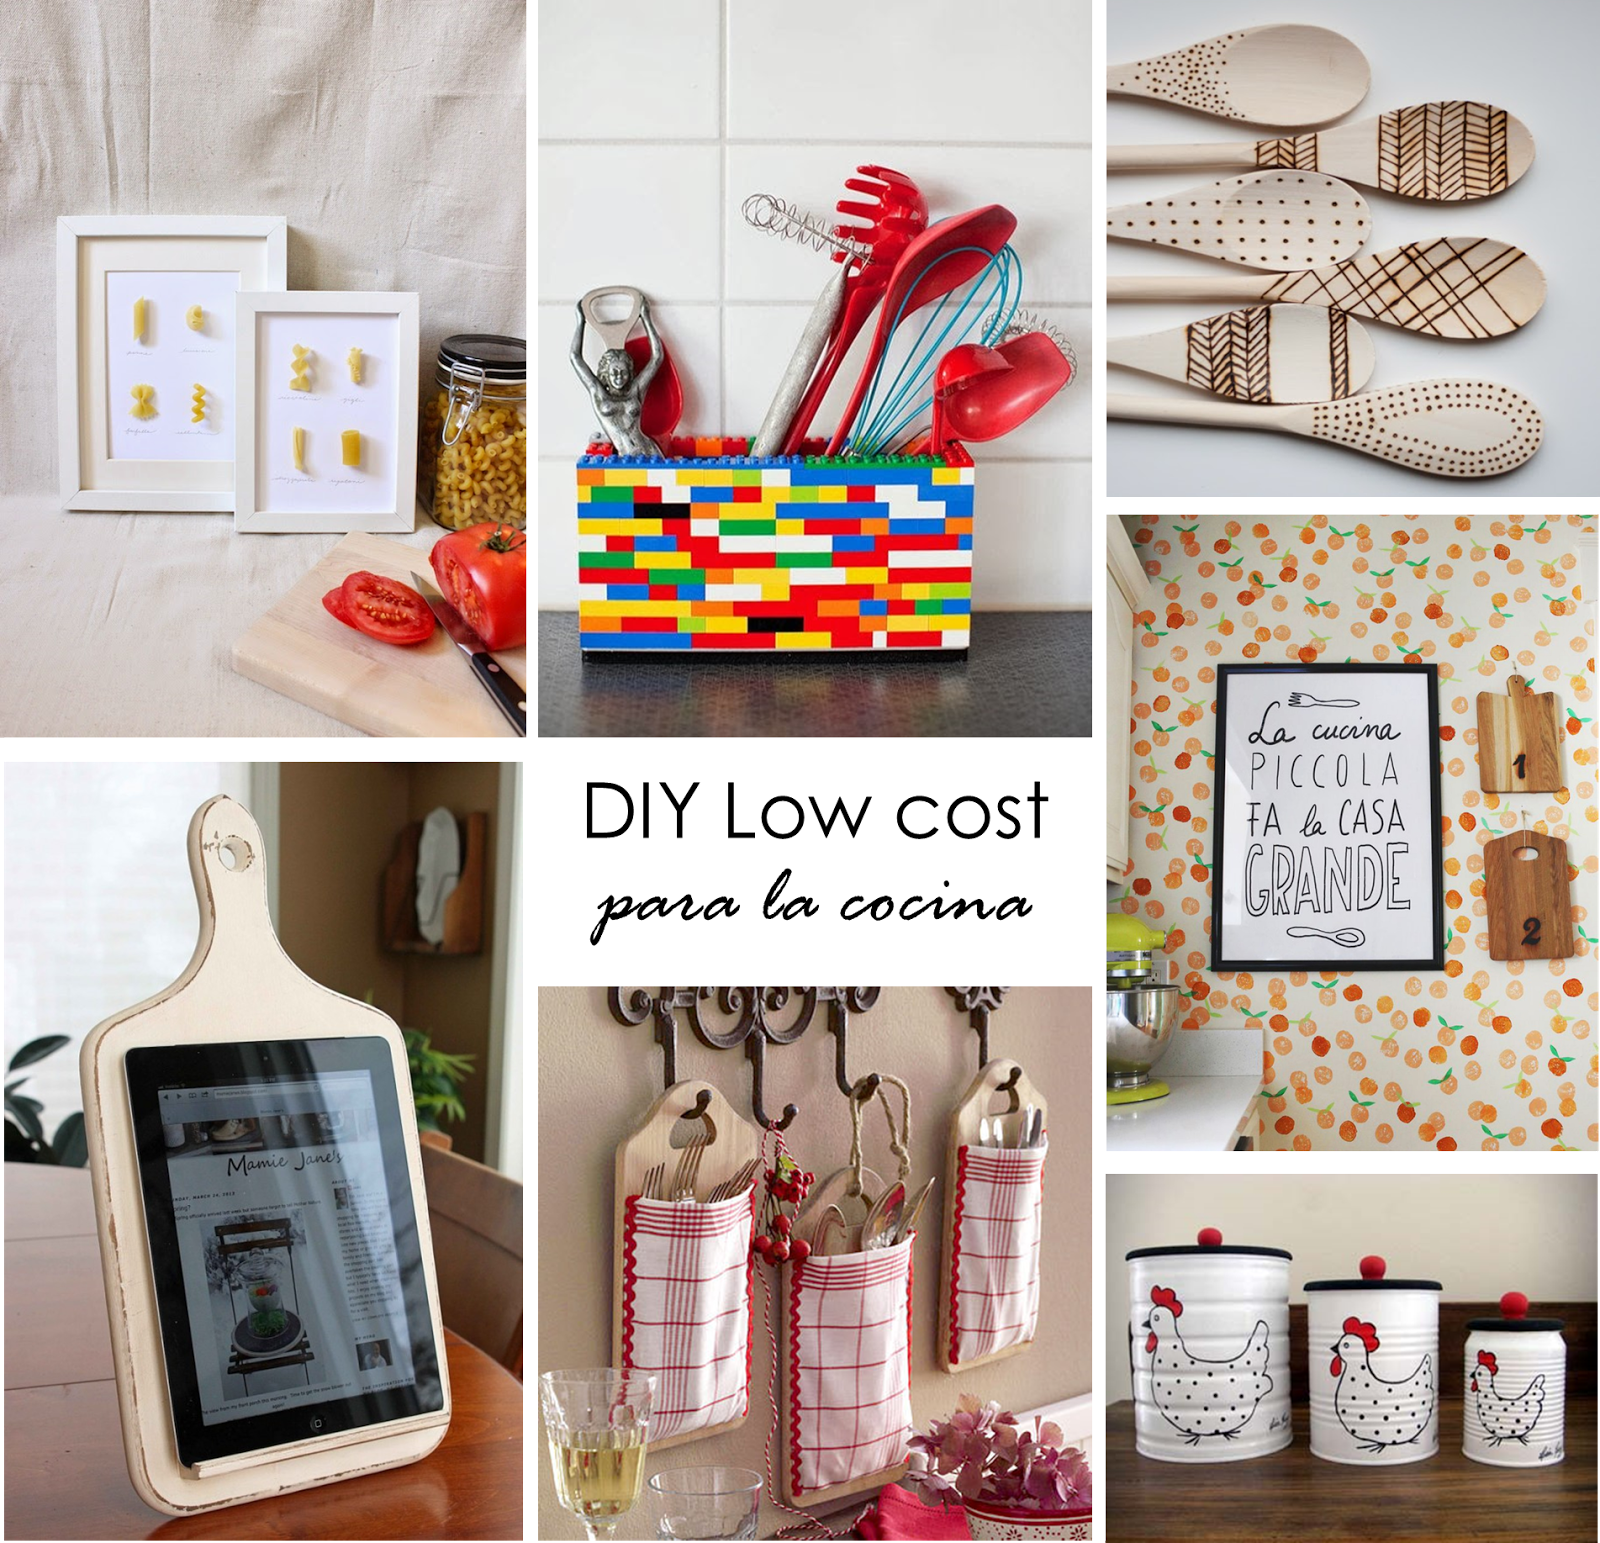 Small lowcost 8 ideas diy para tu cocina decorar tu - Ideas para decorar una casa ...